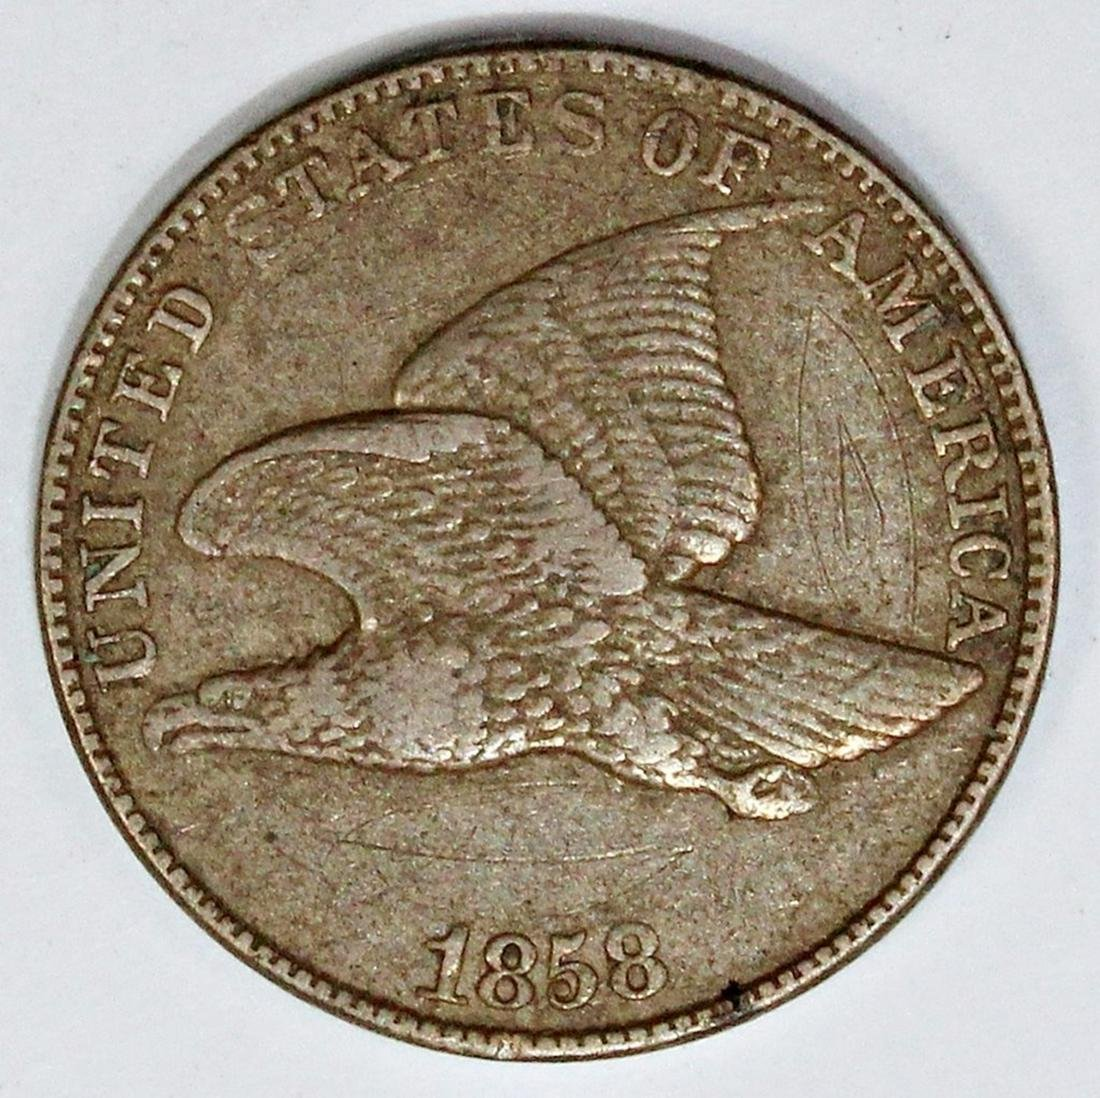 1858 LARGE LETTERS FLYING EAGLE CENT